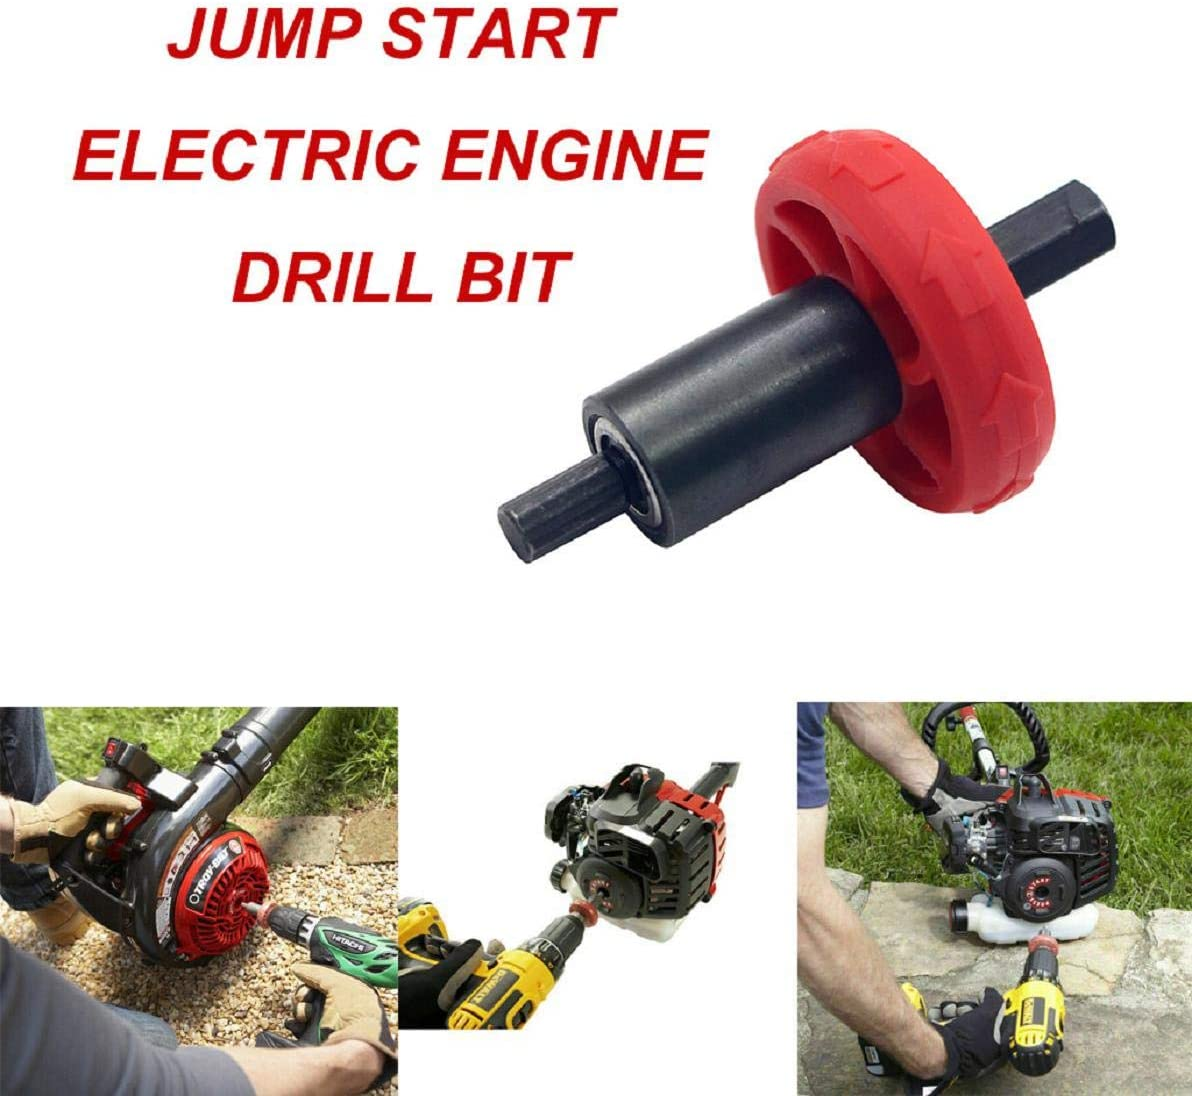 Amazon.com: Boddenly Drill Bit Jump Start for Trimmers ...